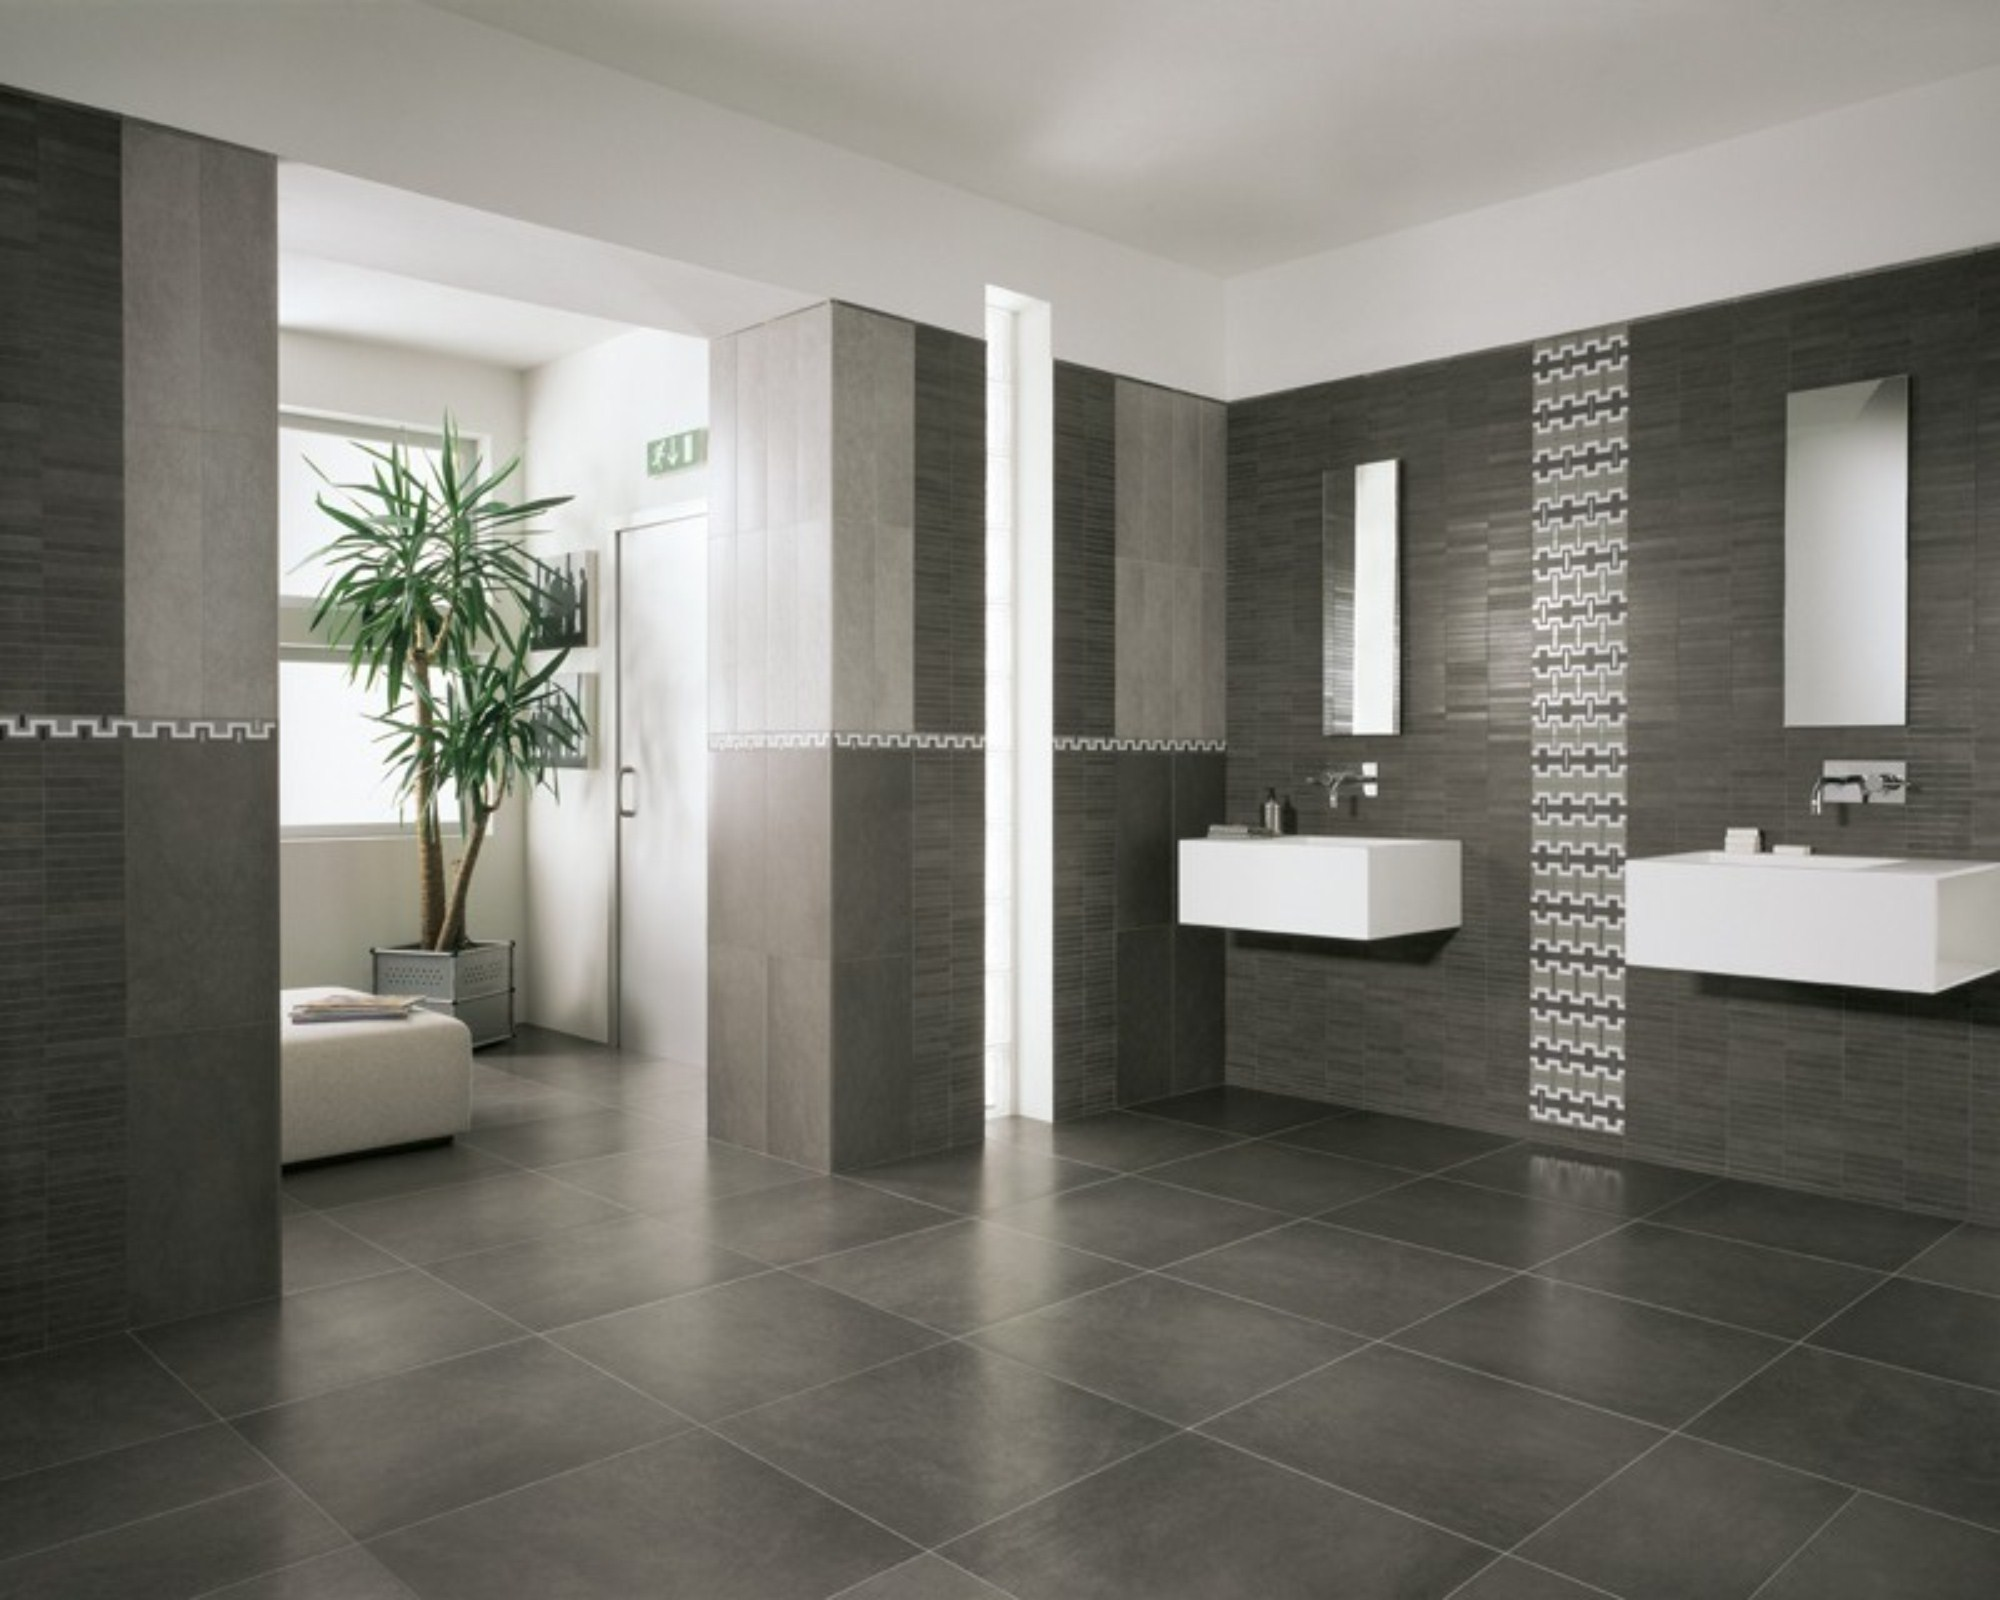 darkgreybathroomfloortiles37 darkgreybathroomfloortiles38 darkgreybathroomfloortiles39 66 white bathroom